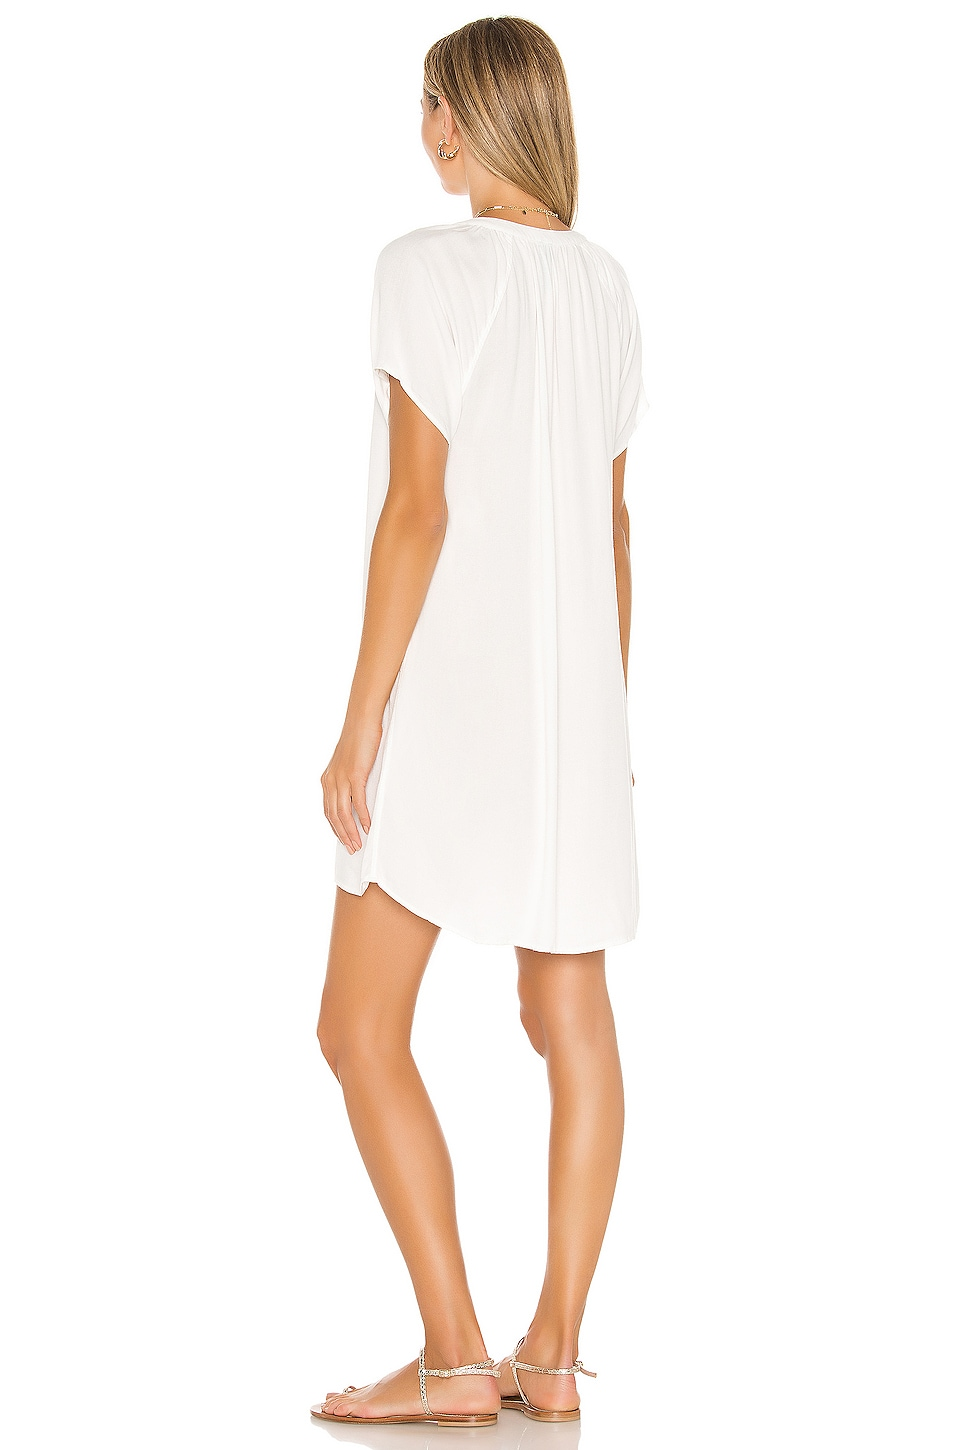 Beach Crepe Mini Dress, view 3, click to view large image.